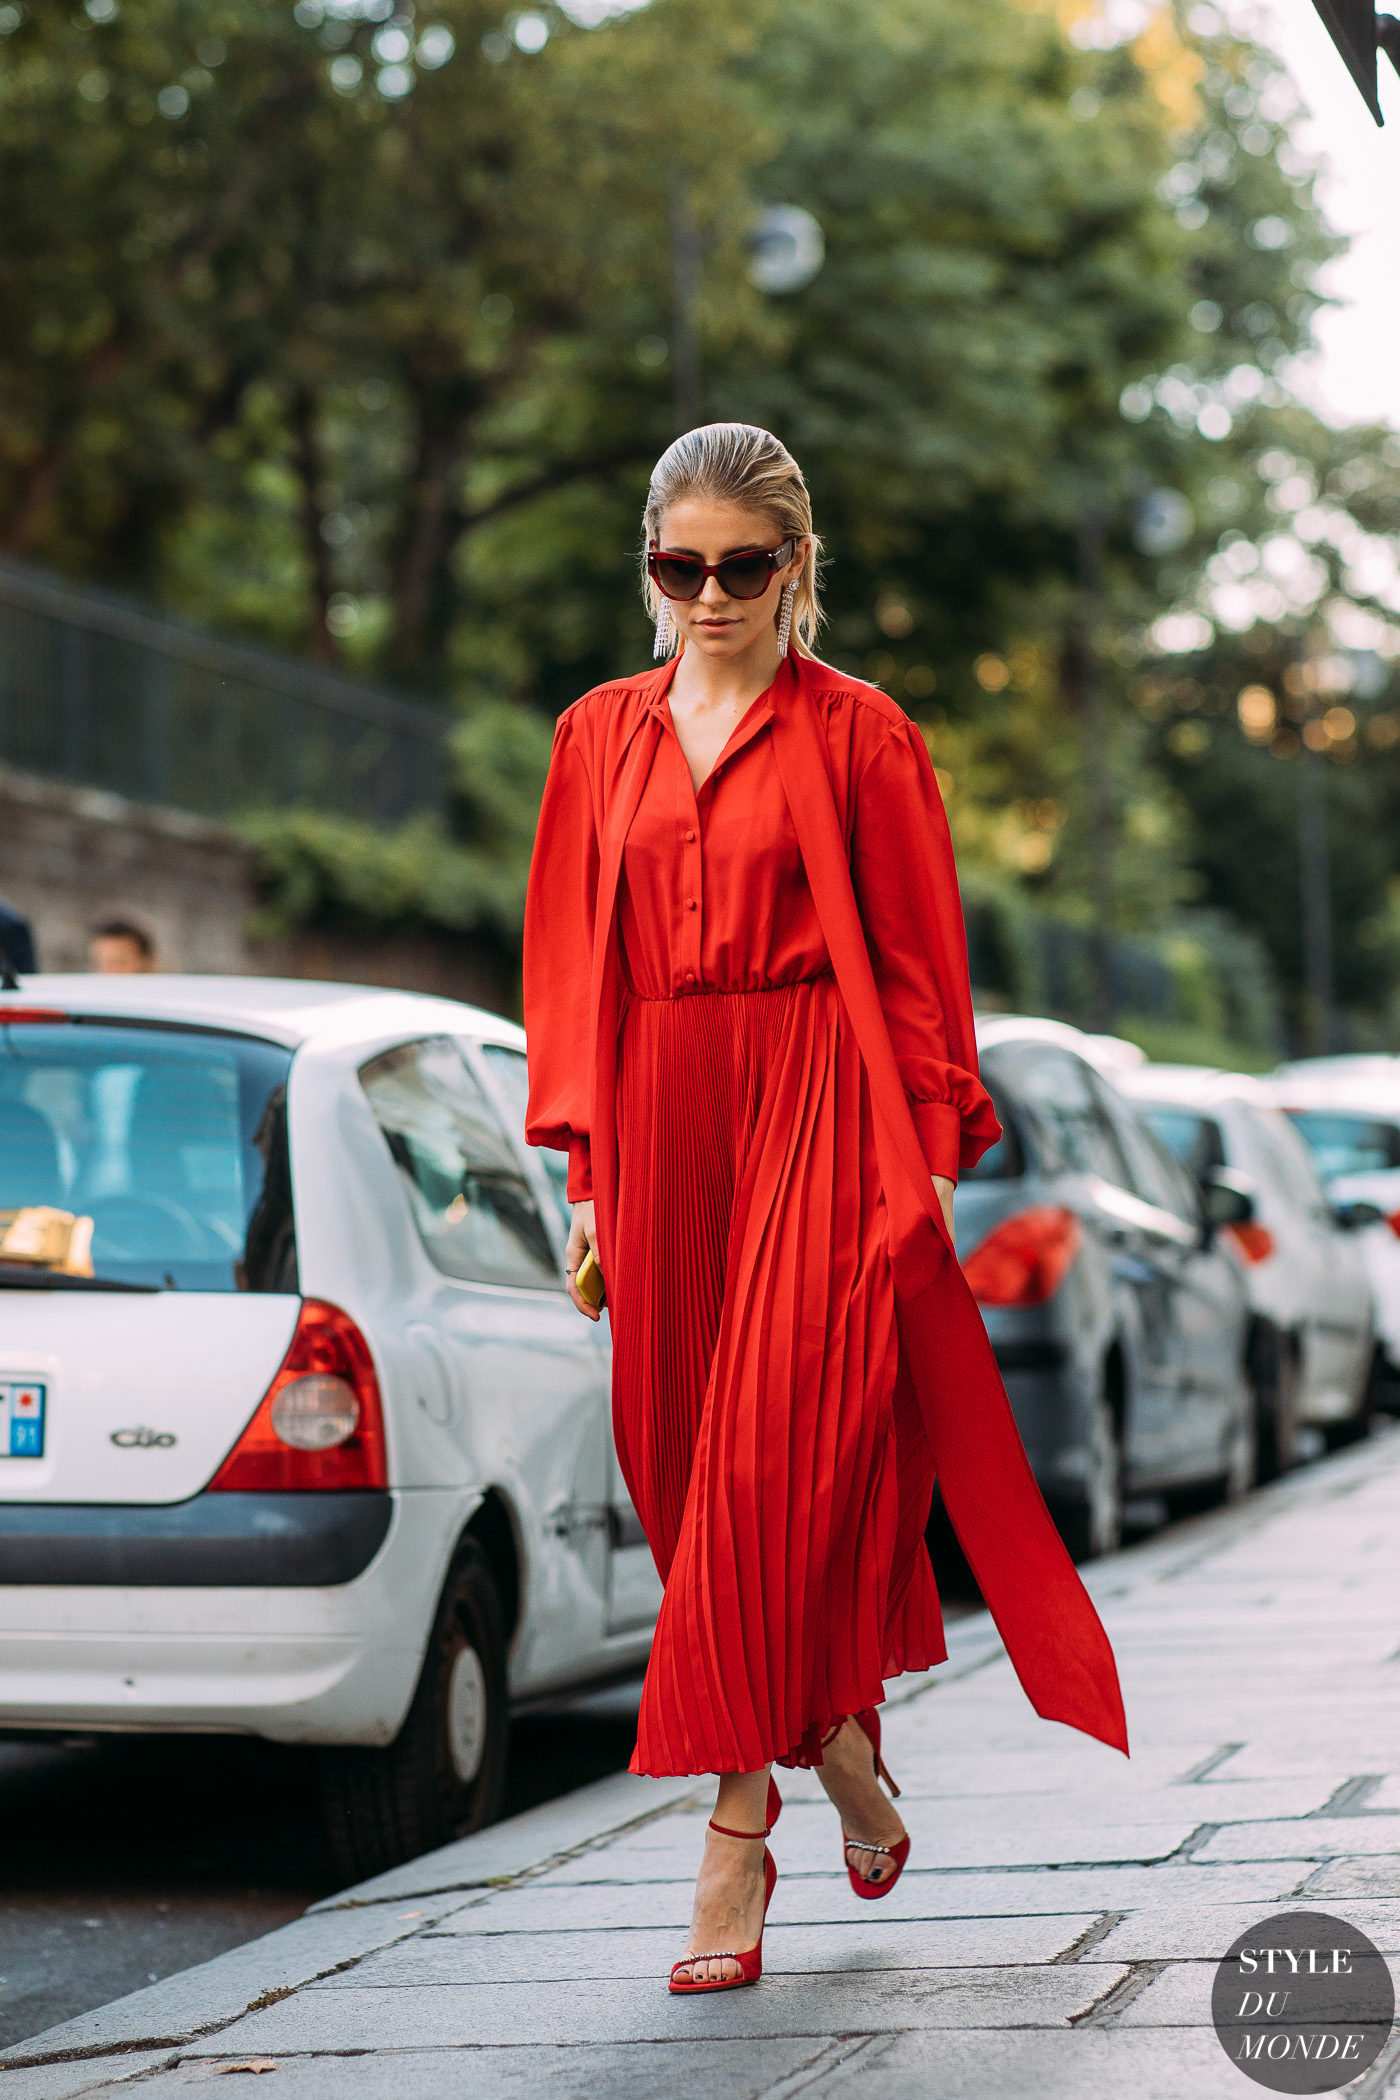 Caroline-Daur-by red dress street style